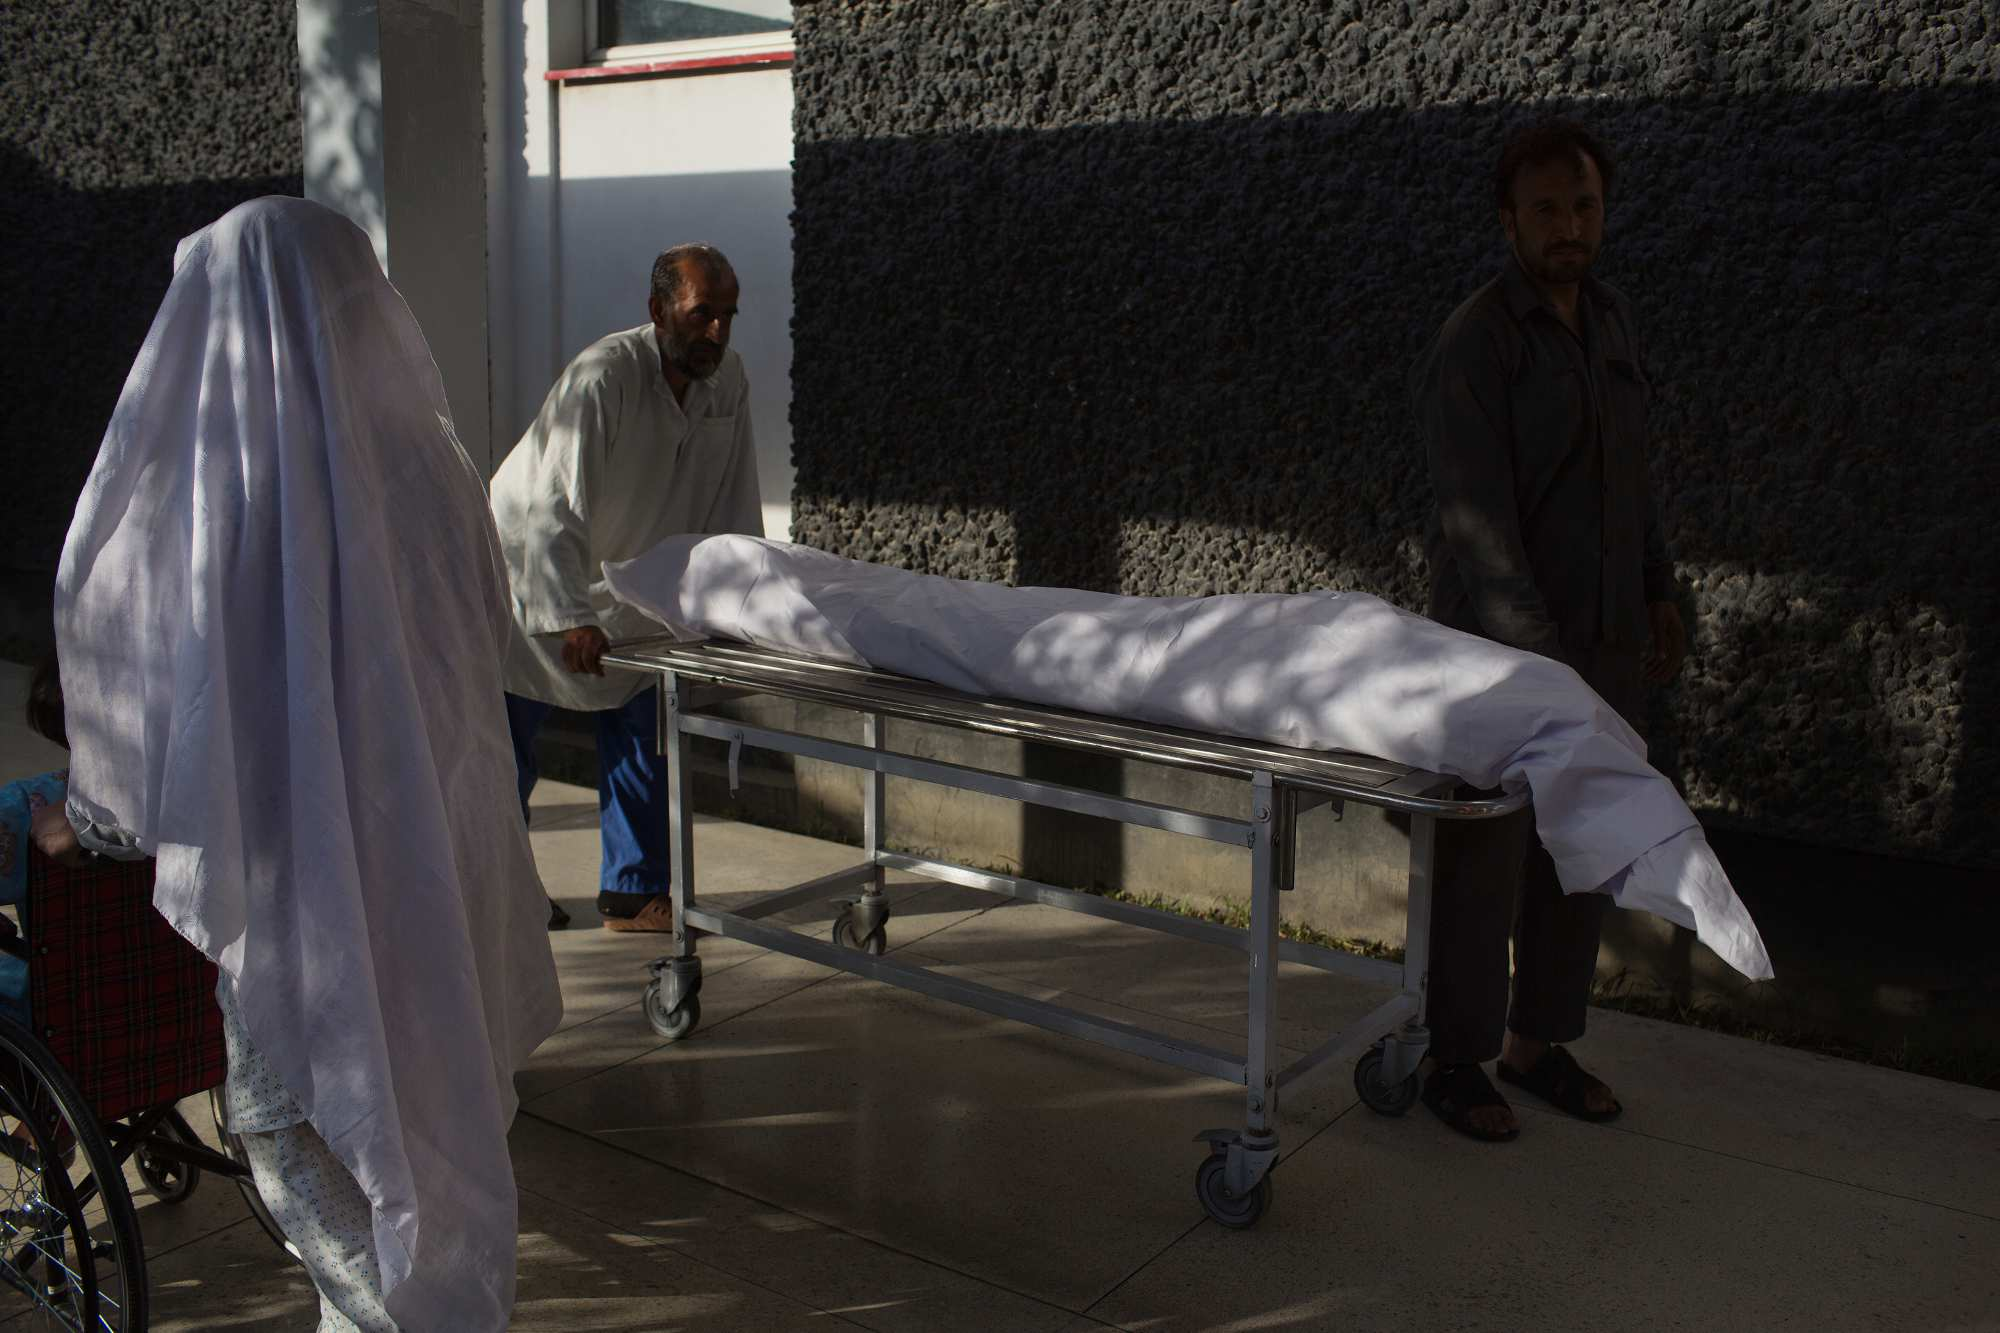 Nurses wheel the body of Shafiullah, 18, to the morgue at Emergency. Shafiullah, from Kabul, suffered a bullet to the head, in and out, from temple to temple. He died in the ICU on September 30.